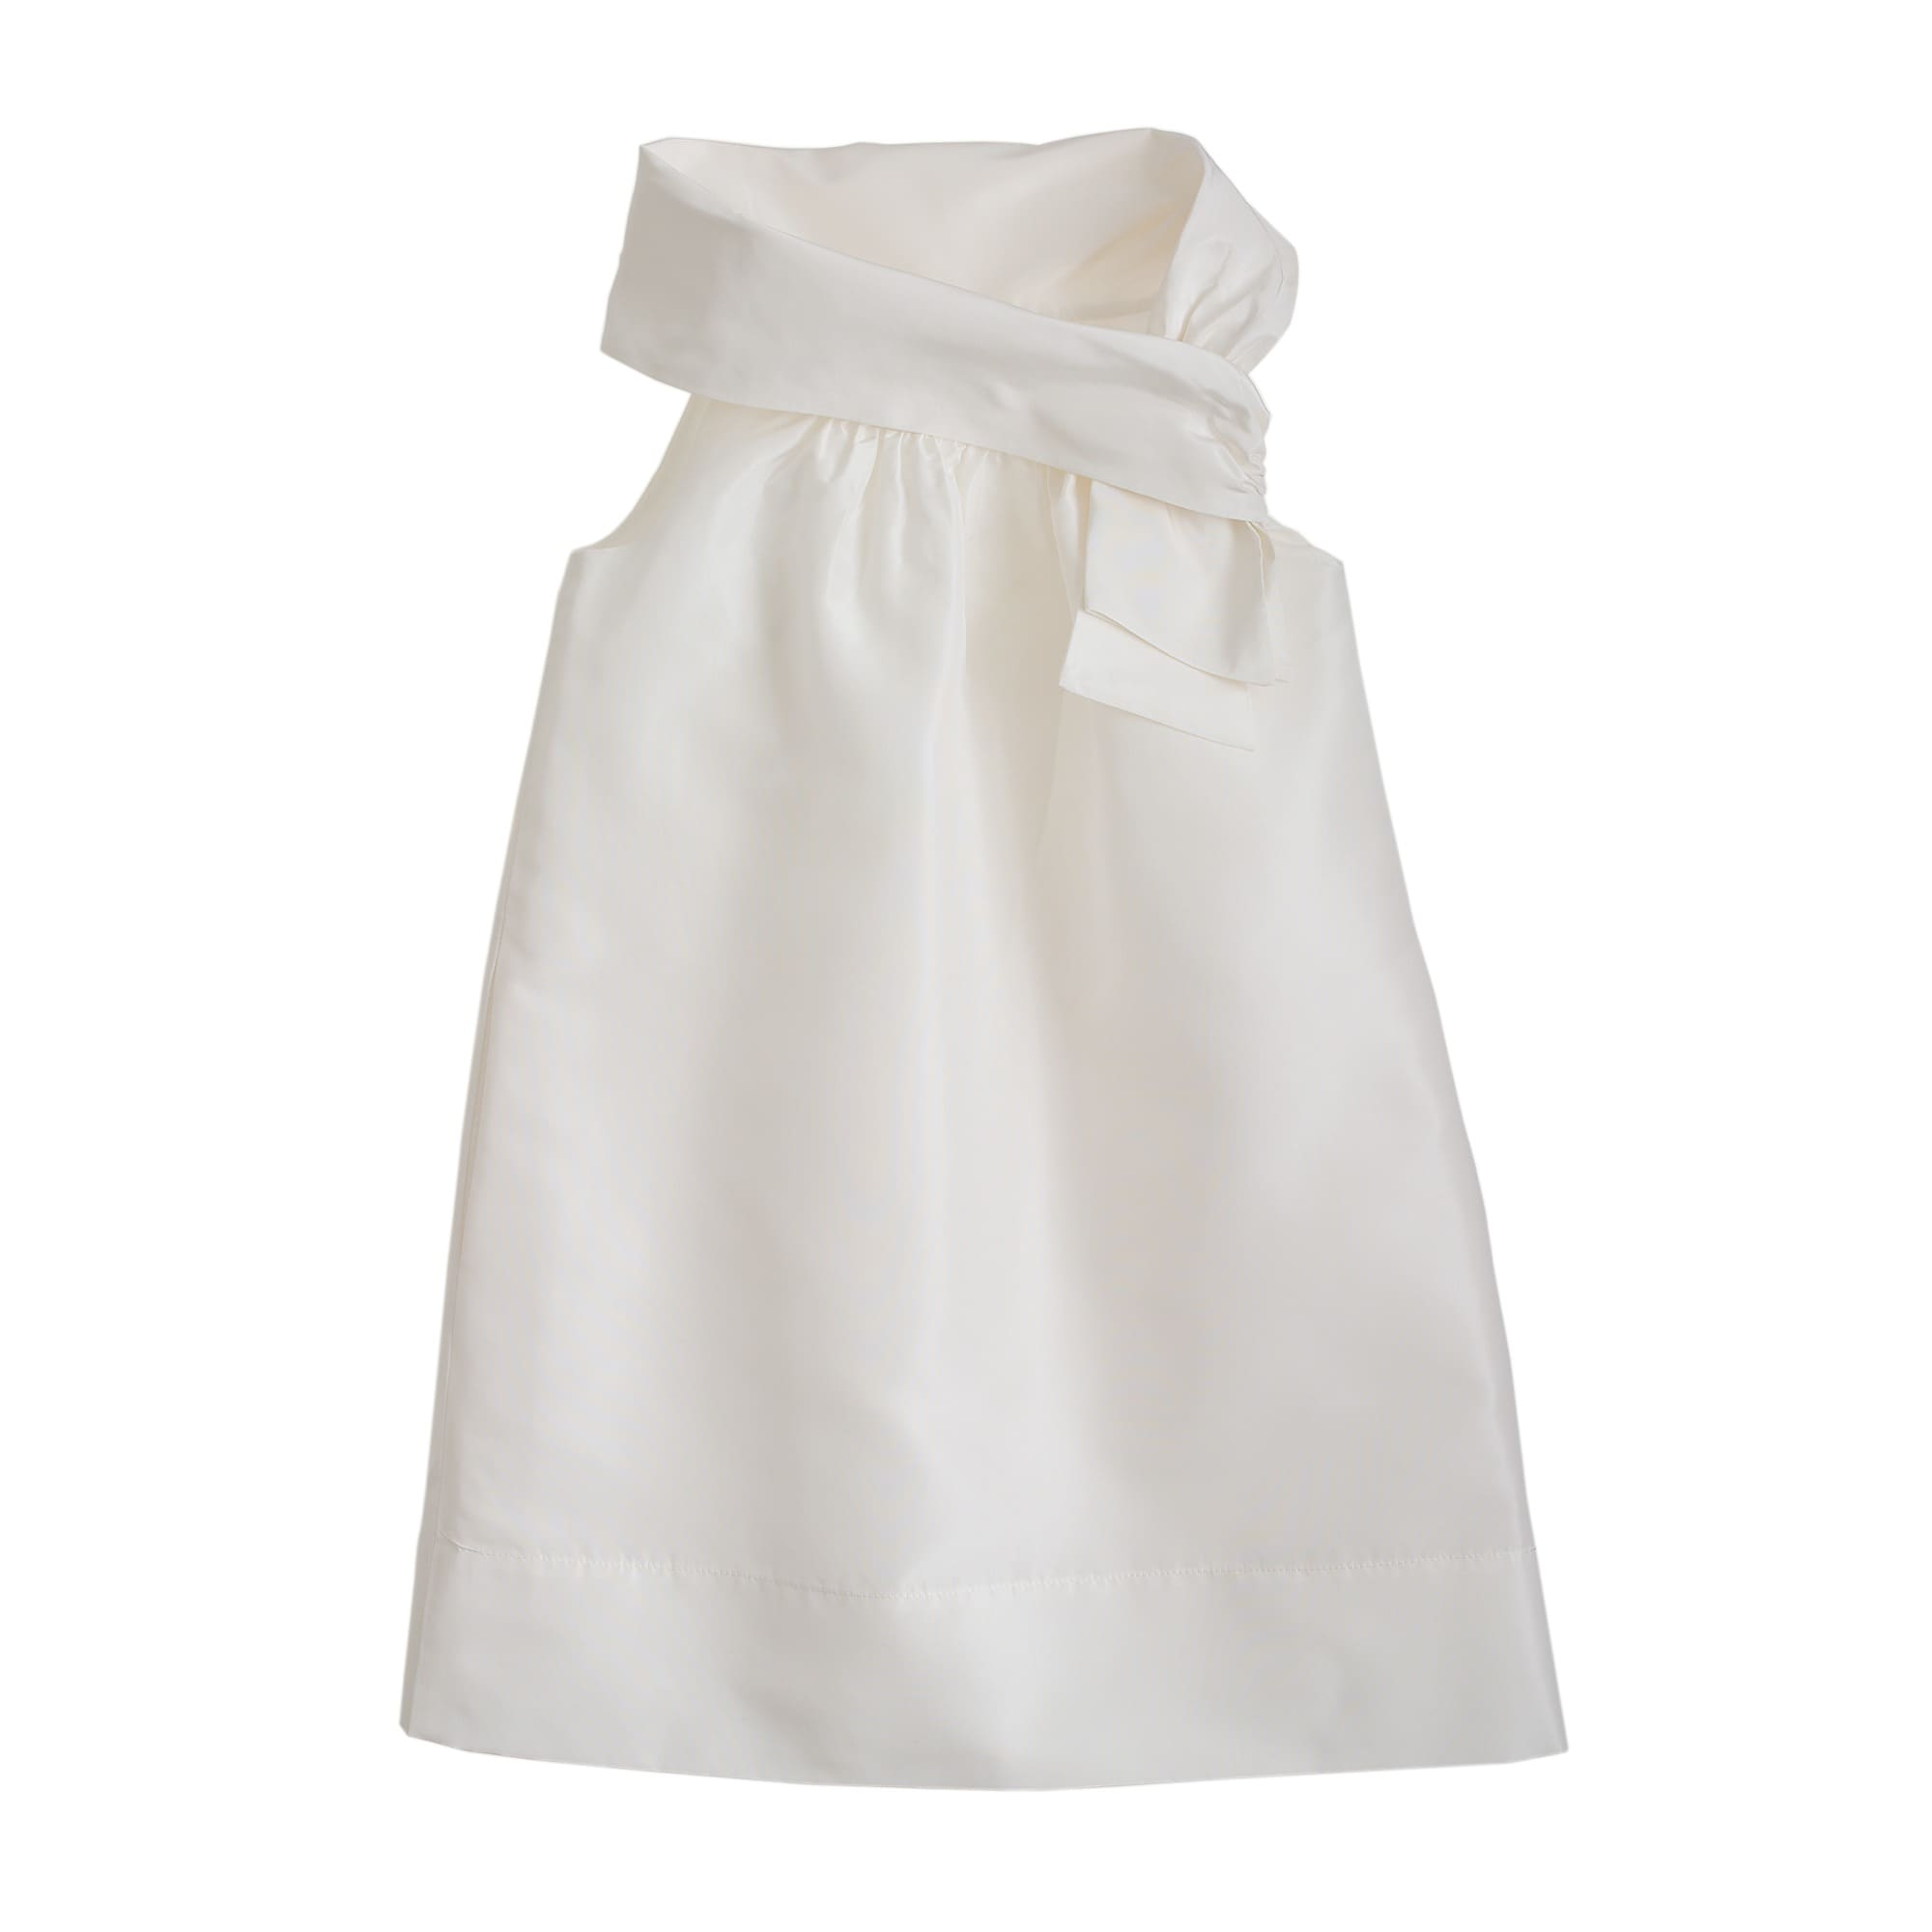 Girls' Collection silk taffeta Quinn dress